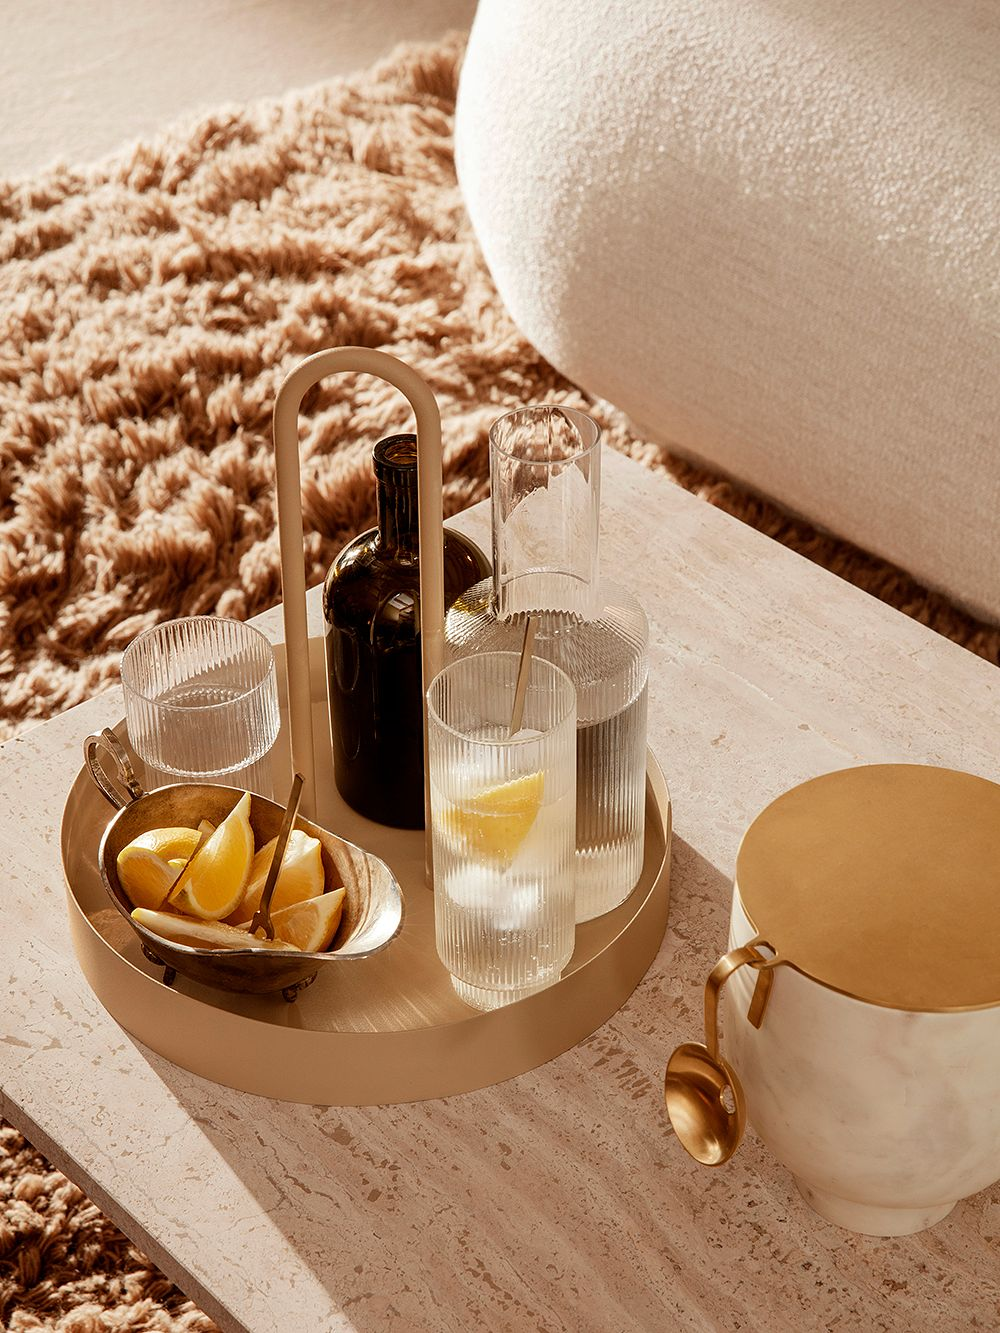 Ferm Living's Ripple carafe and glasses